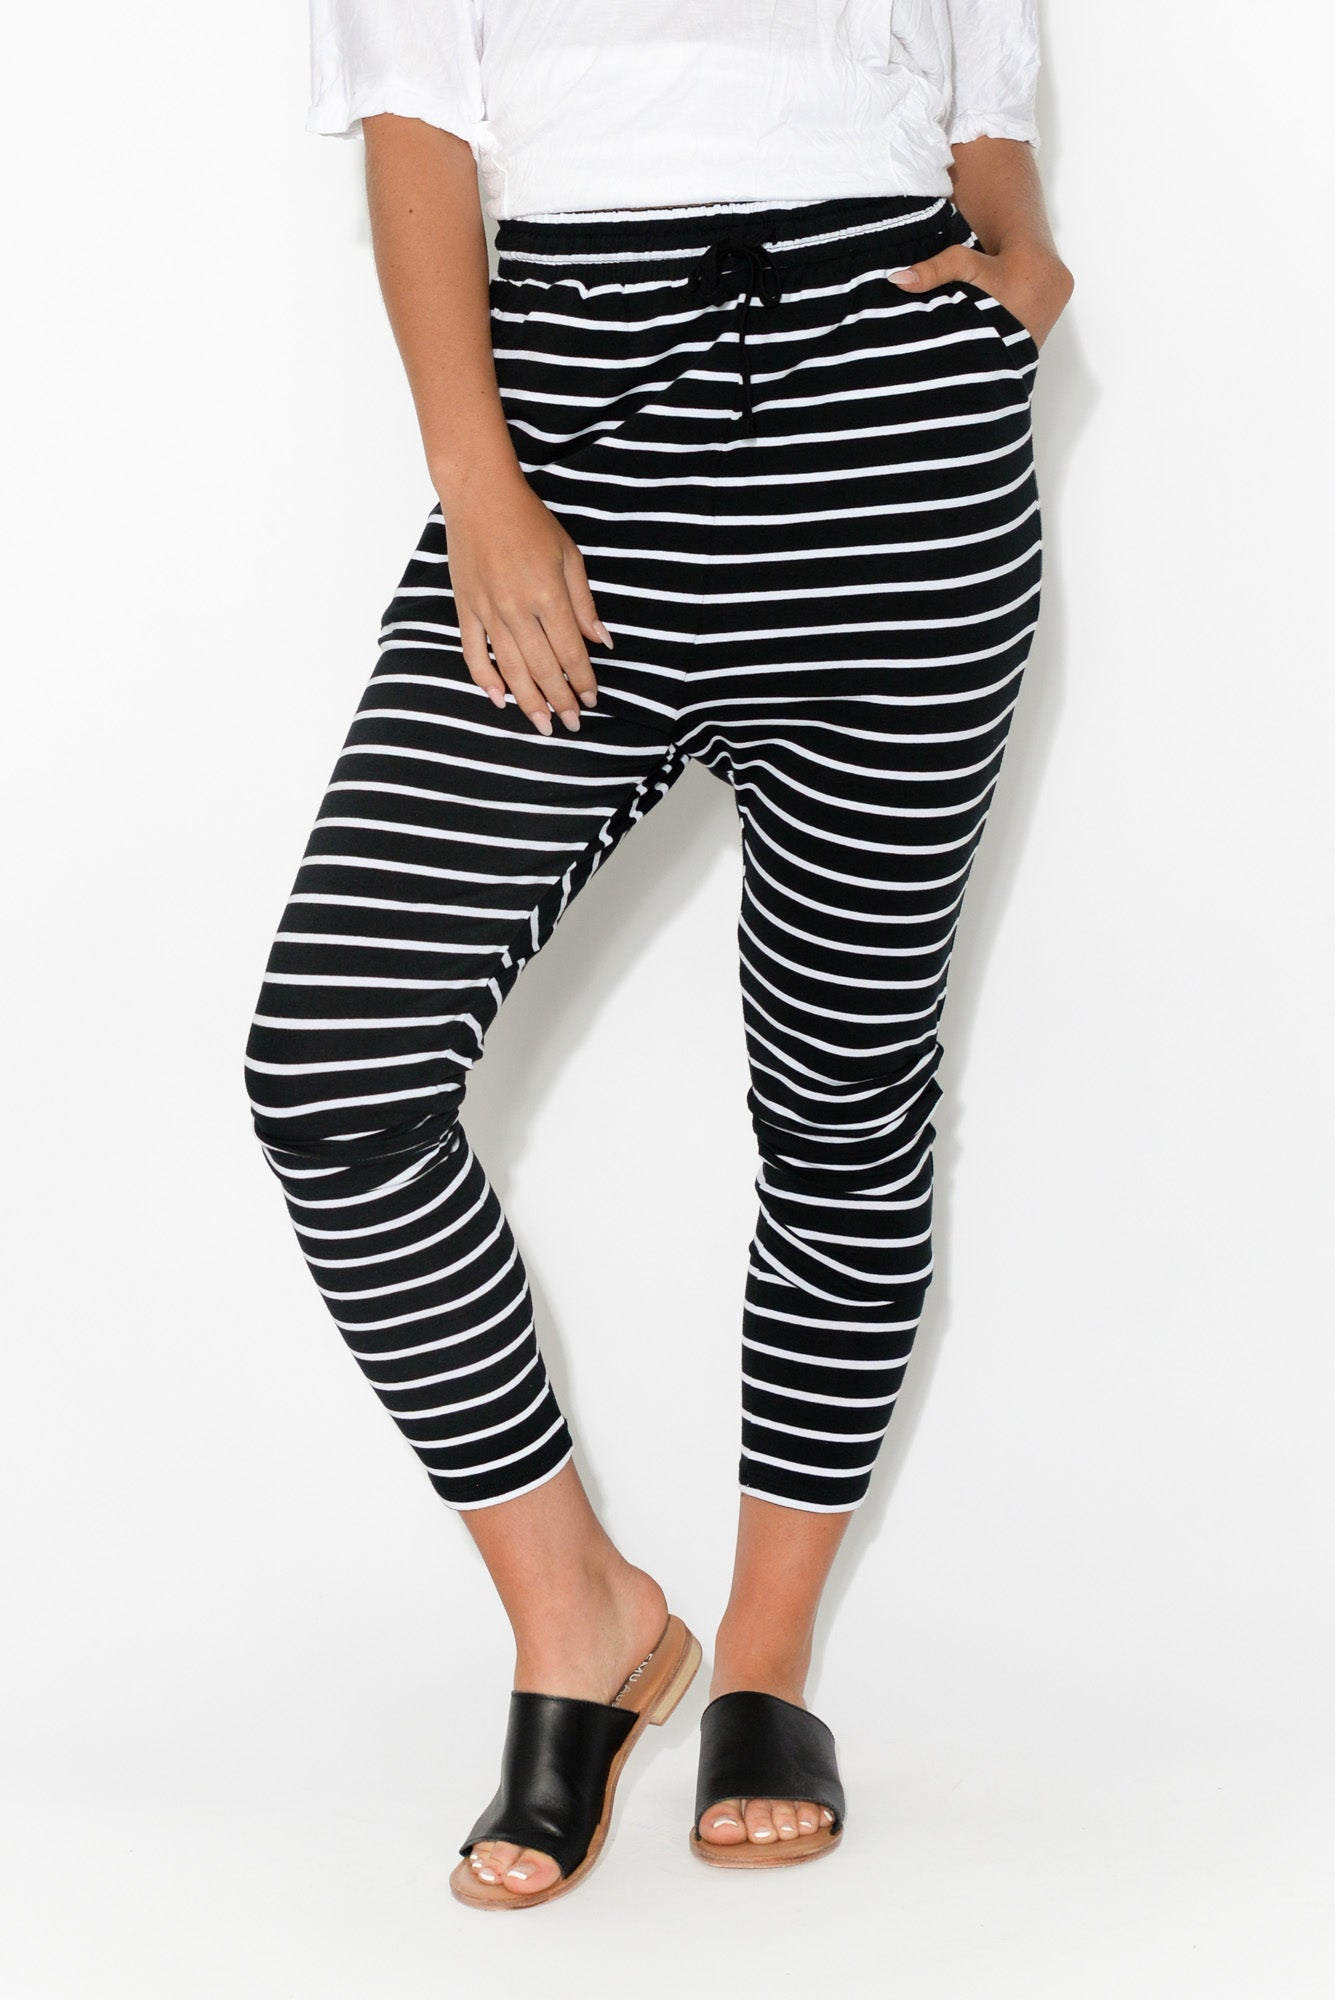 Jade Black and White Stripe Slouch Pant